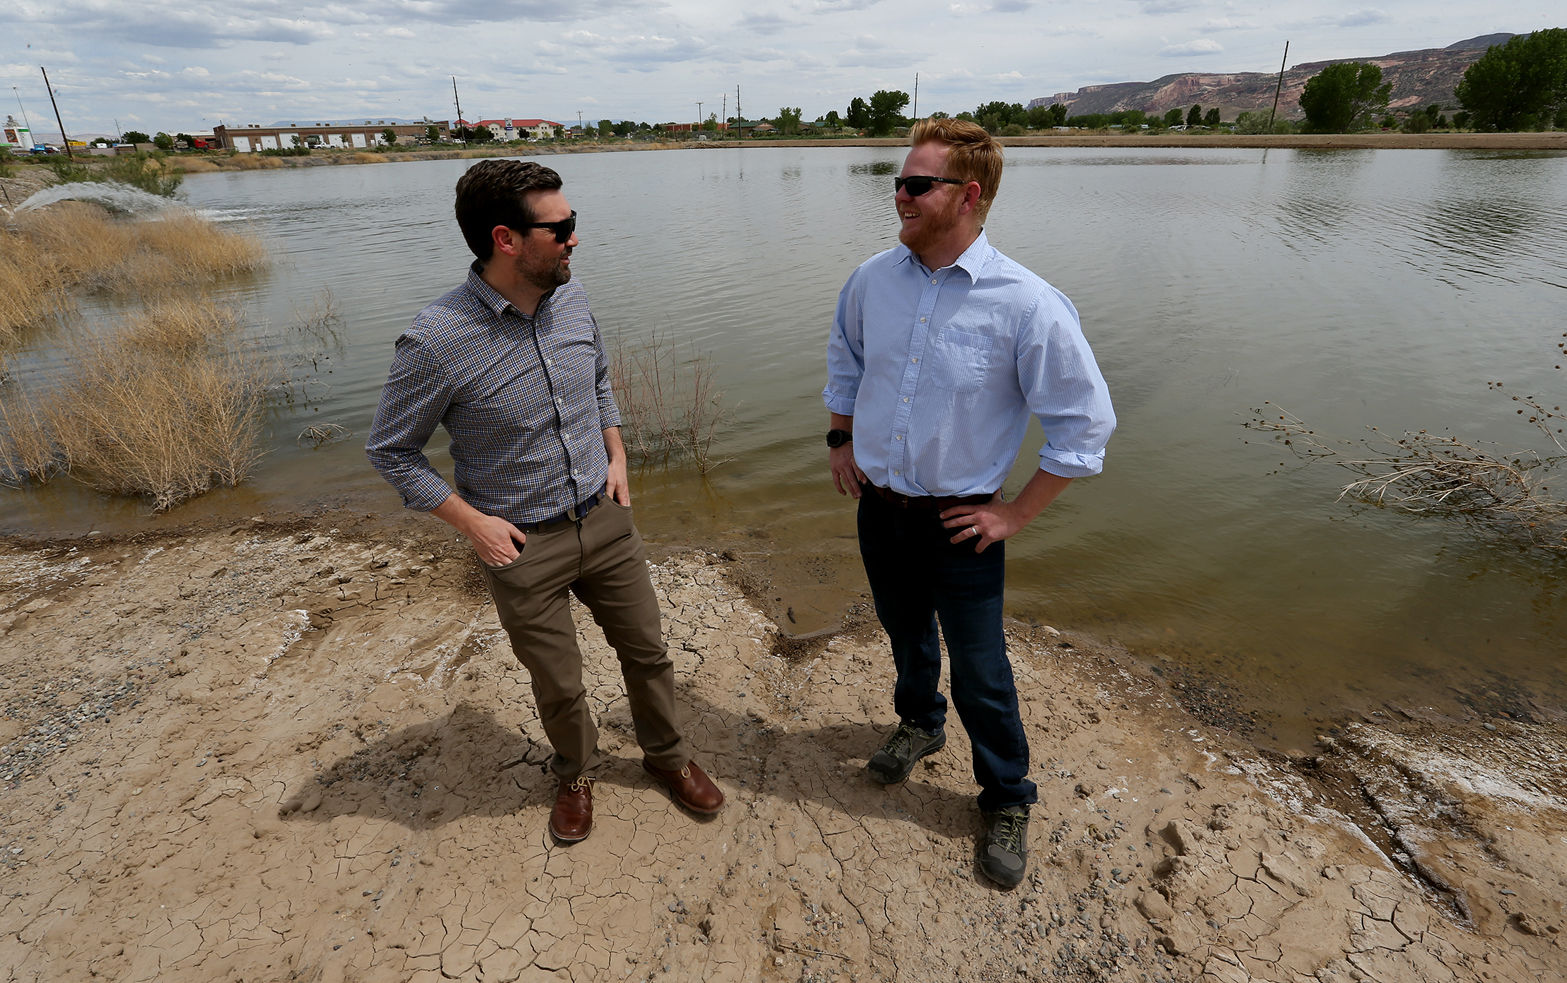 Fruita City Management Seeks Partner for Lagoon Development by July 6